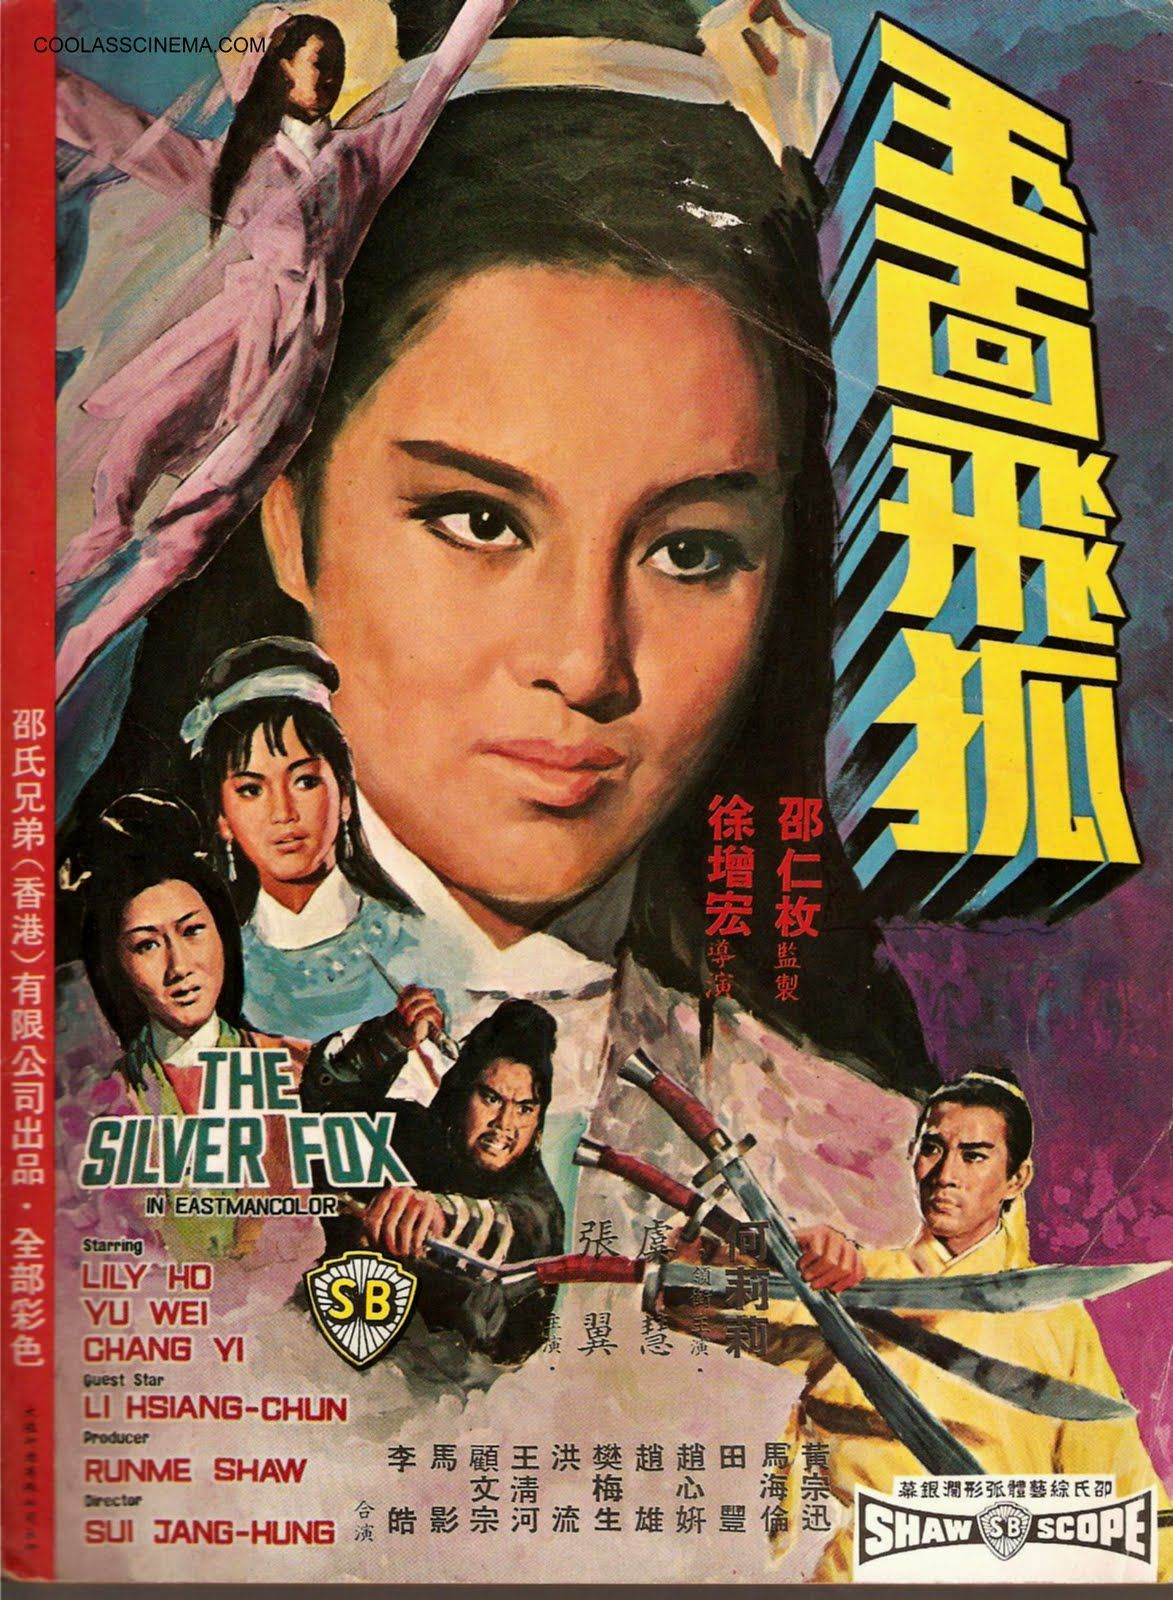 the silver fox | MMMovies | Movie posters, Hong kong movie